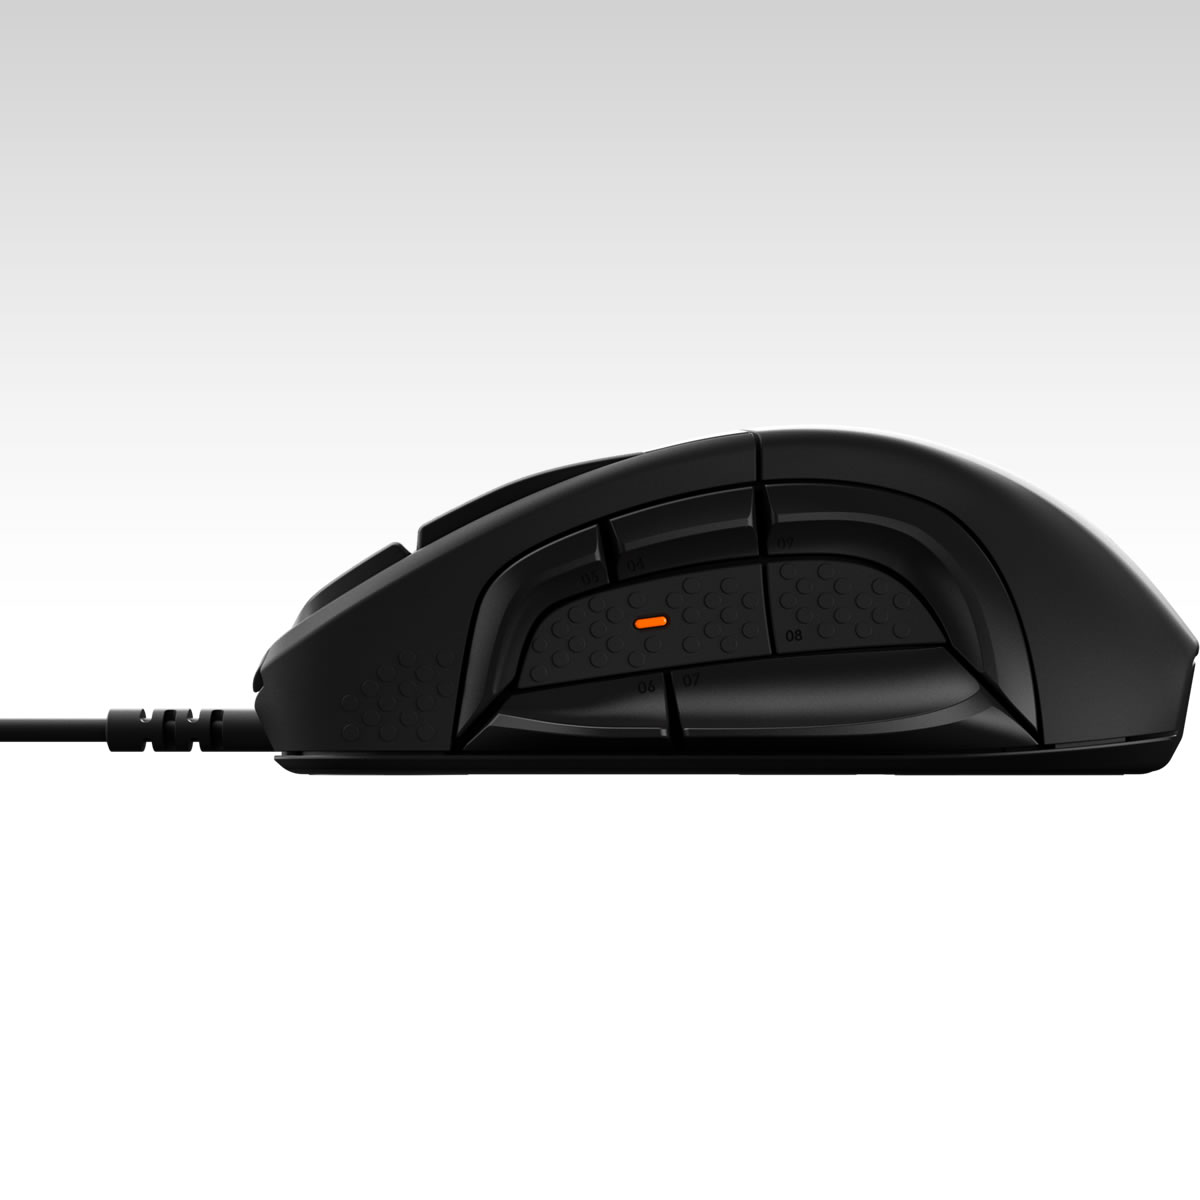 STEELSERIES - MOUSE RIVAL 500 BLACK 62051 (PC, Mac)